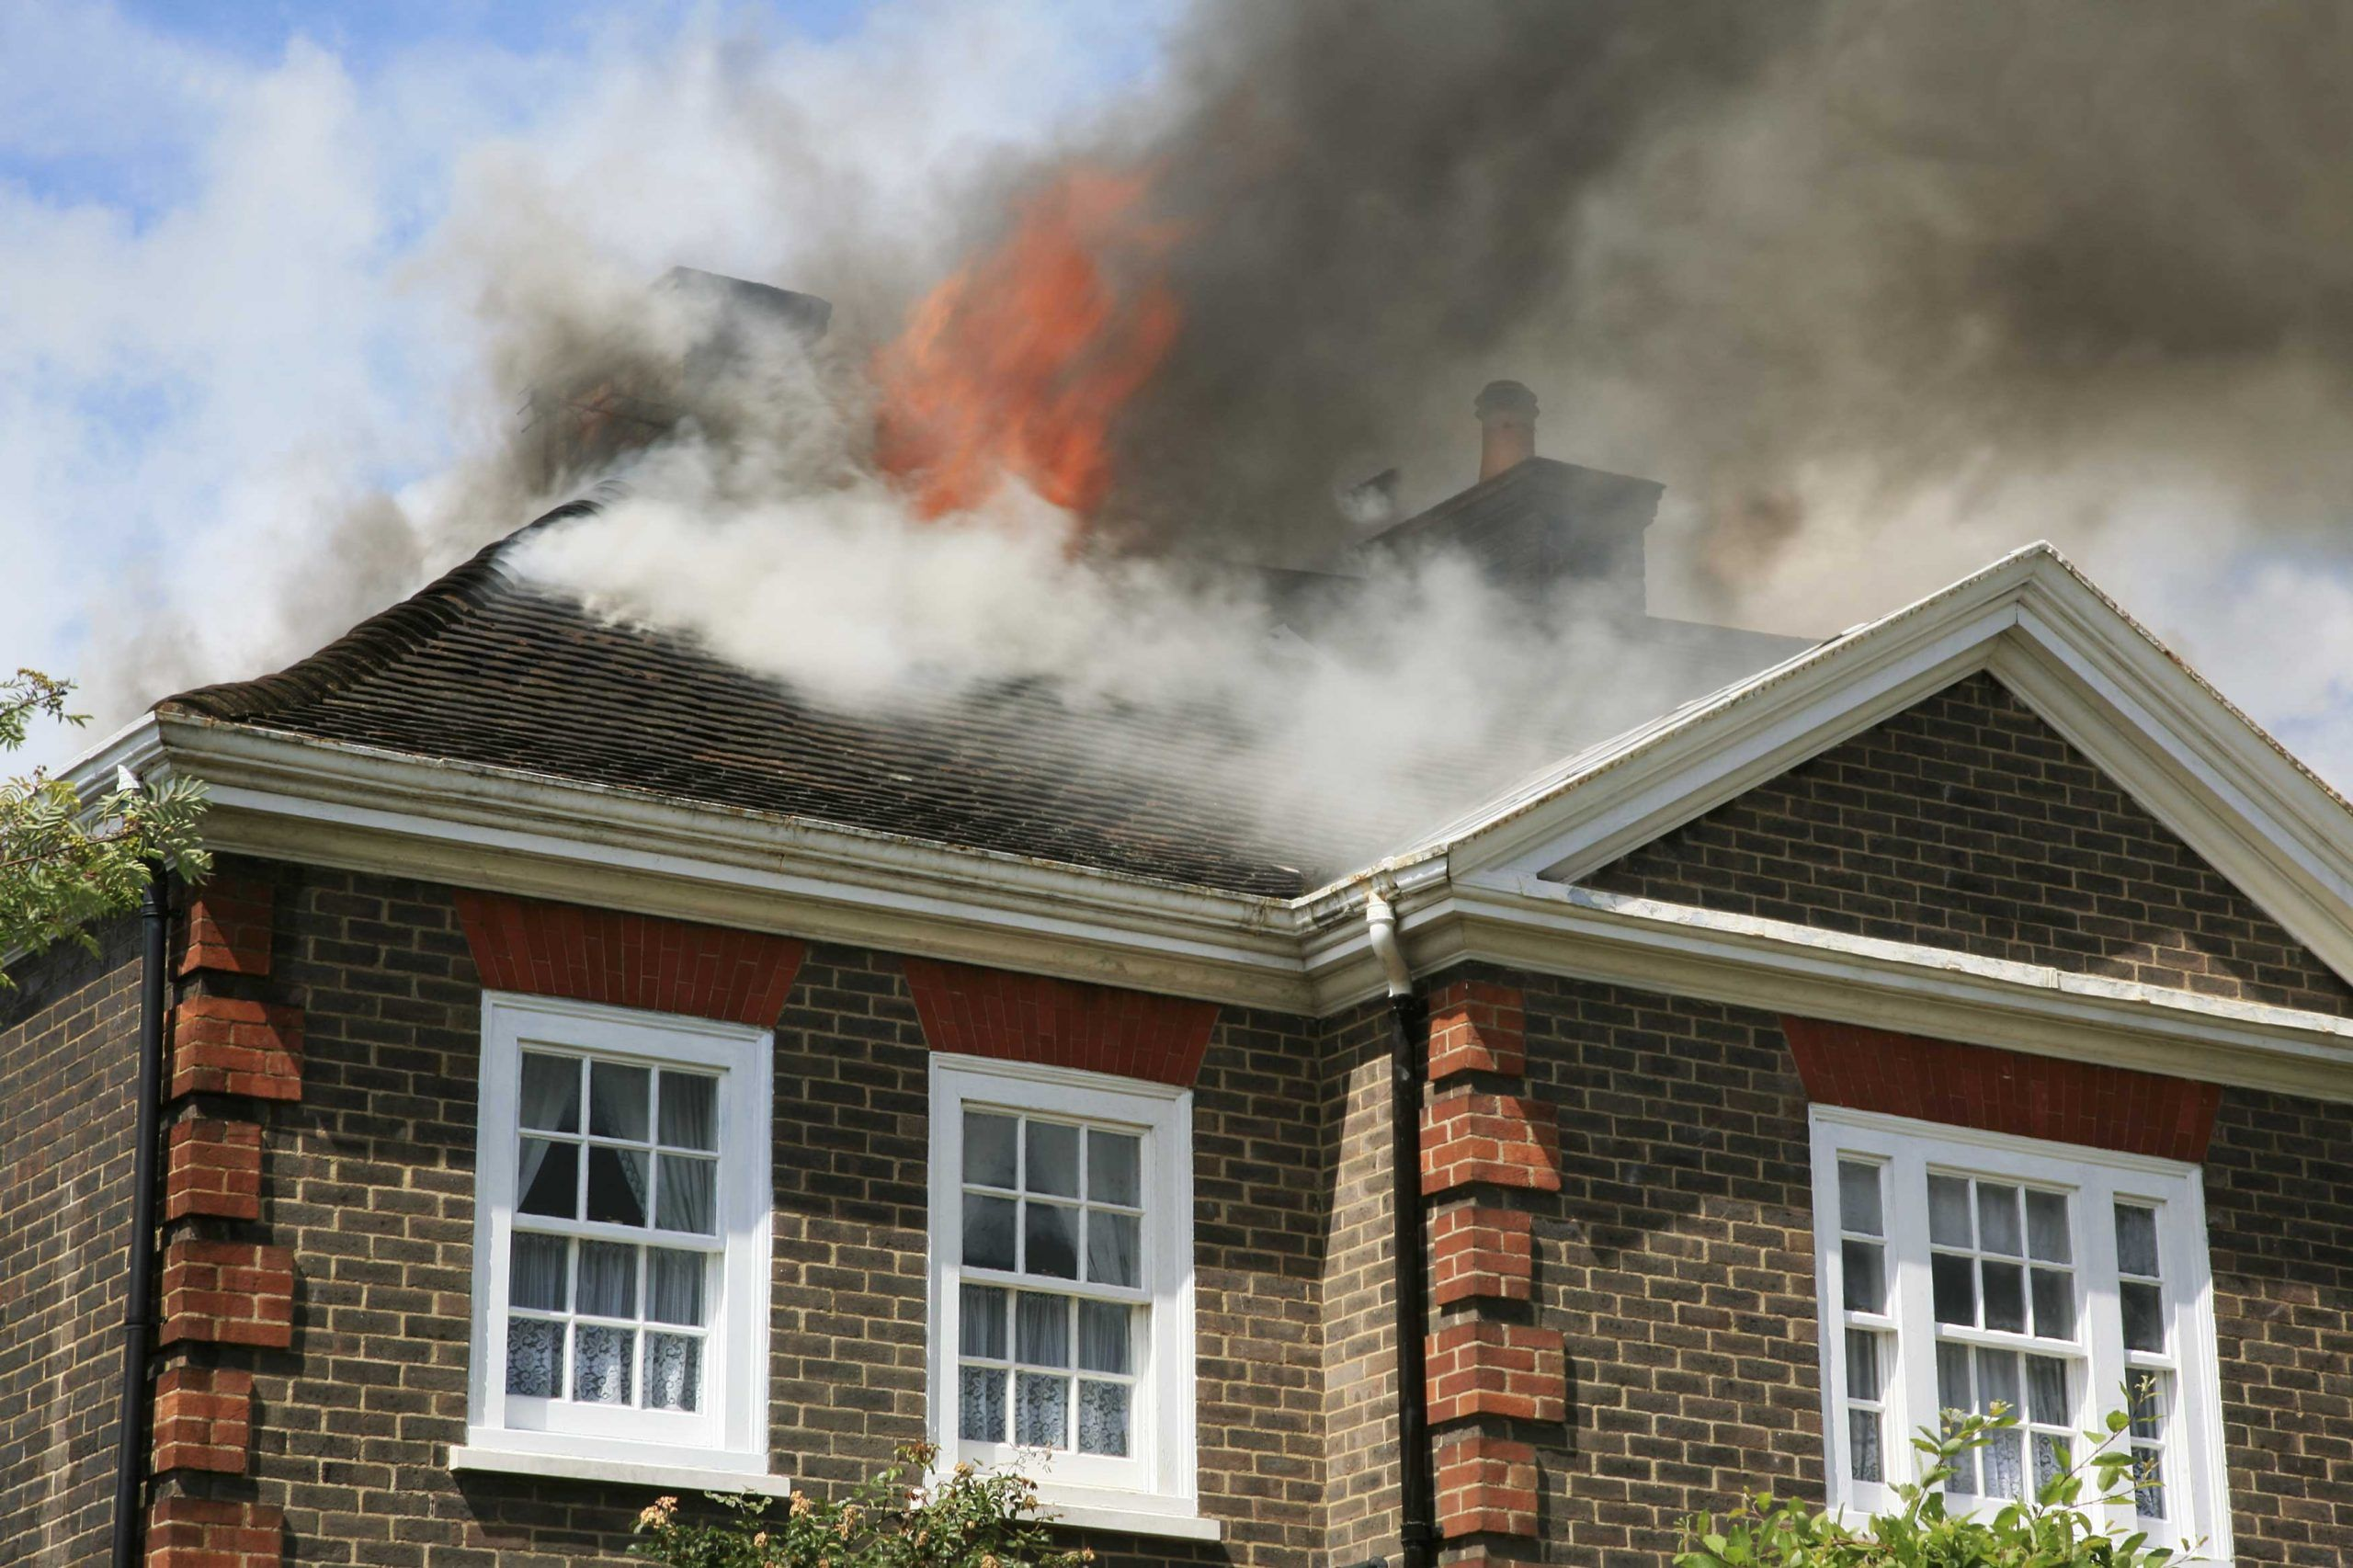 House on fire with fire and smoke damage